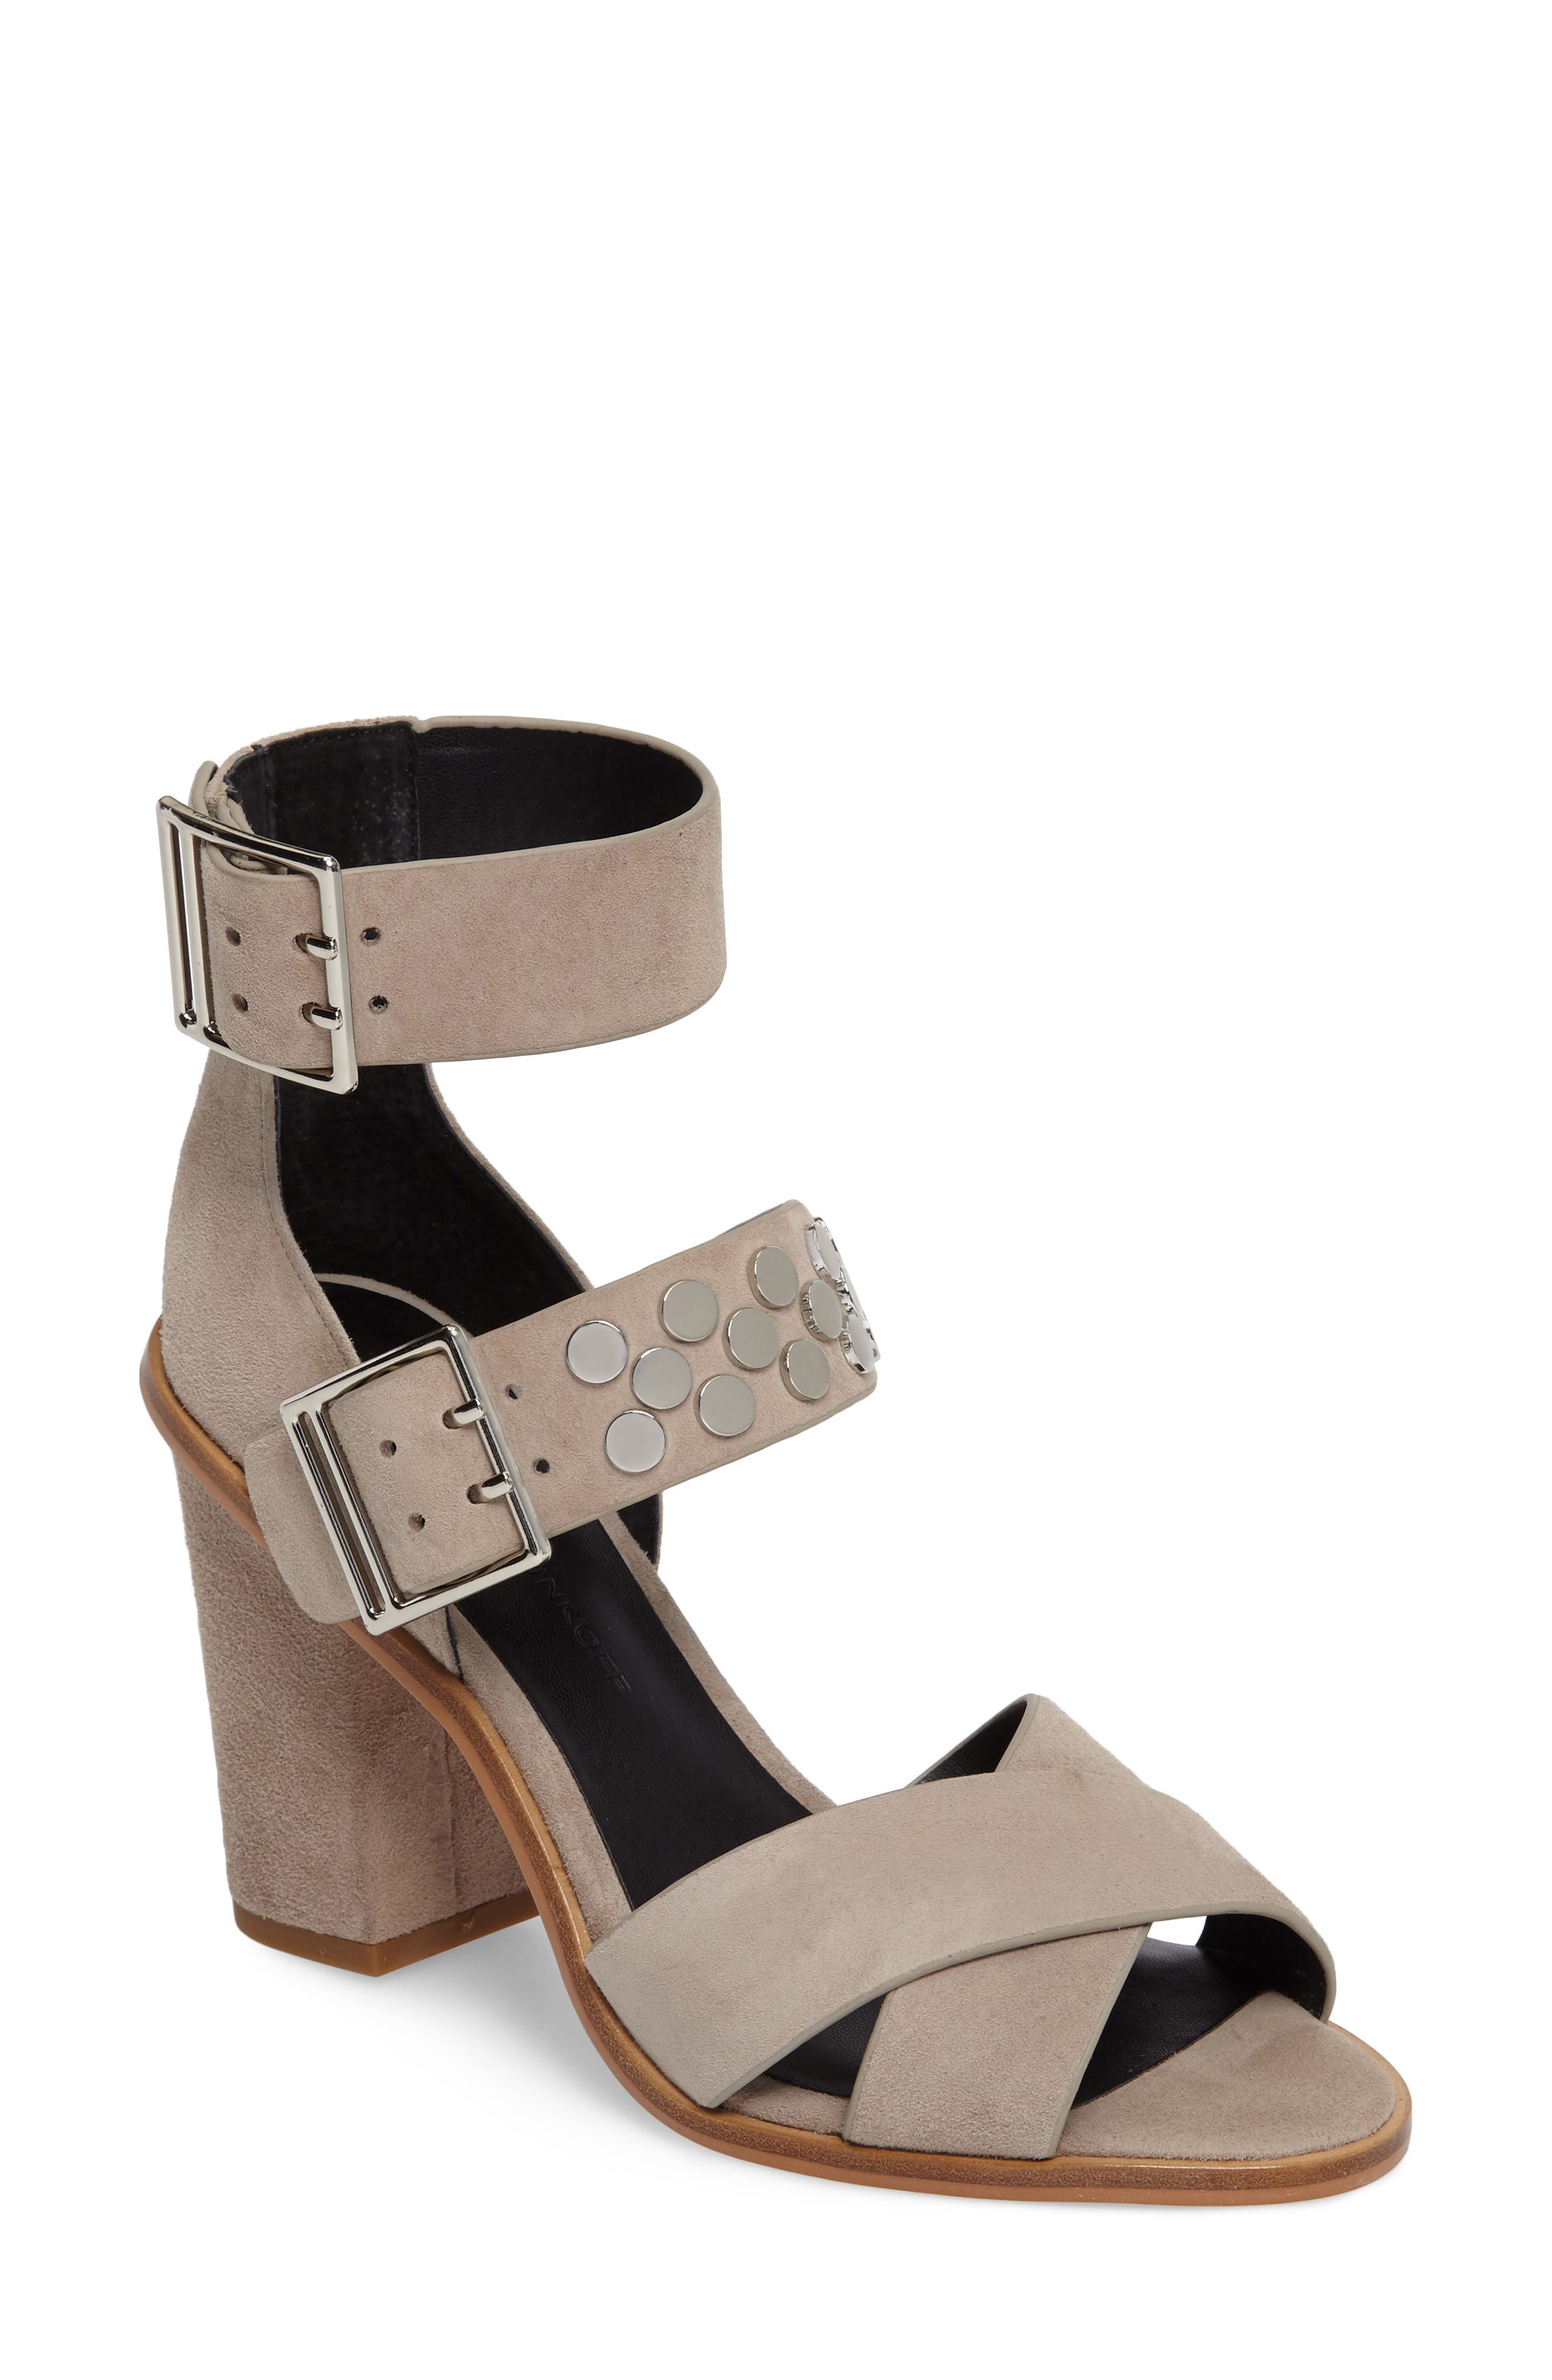 Jennifer Studded Ankle Cuff Sandal,                             Main thumbnail 1, color,                             Sand